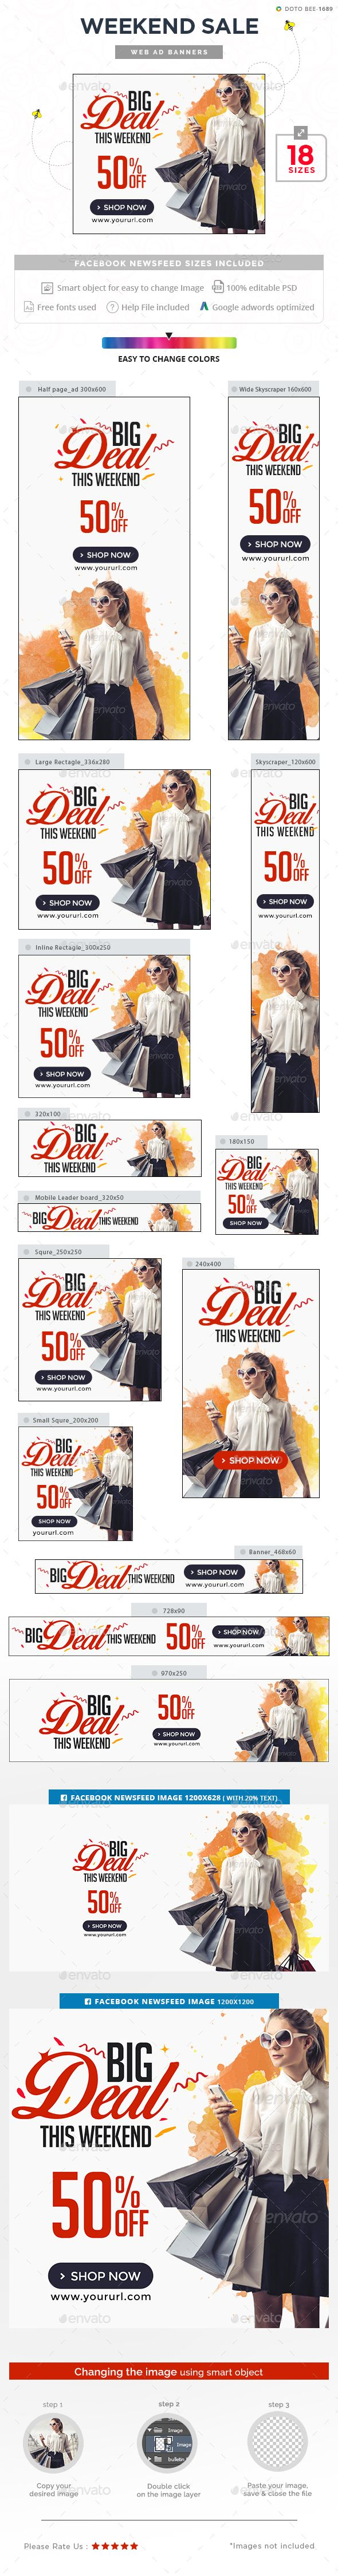 Weekend Sale Banners Template PSD